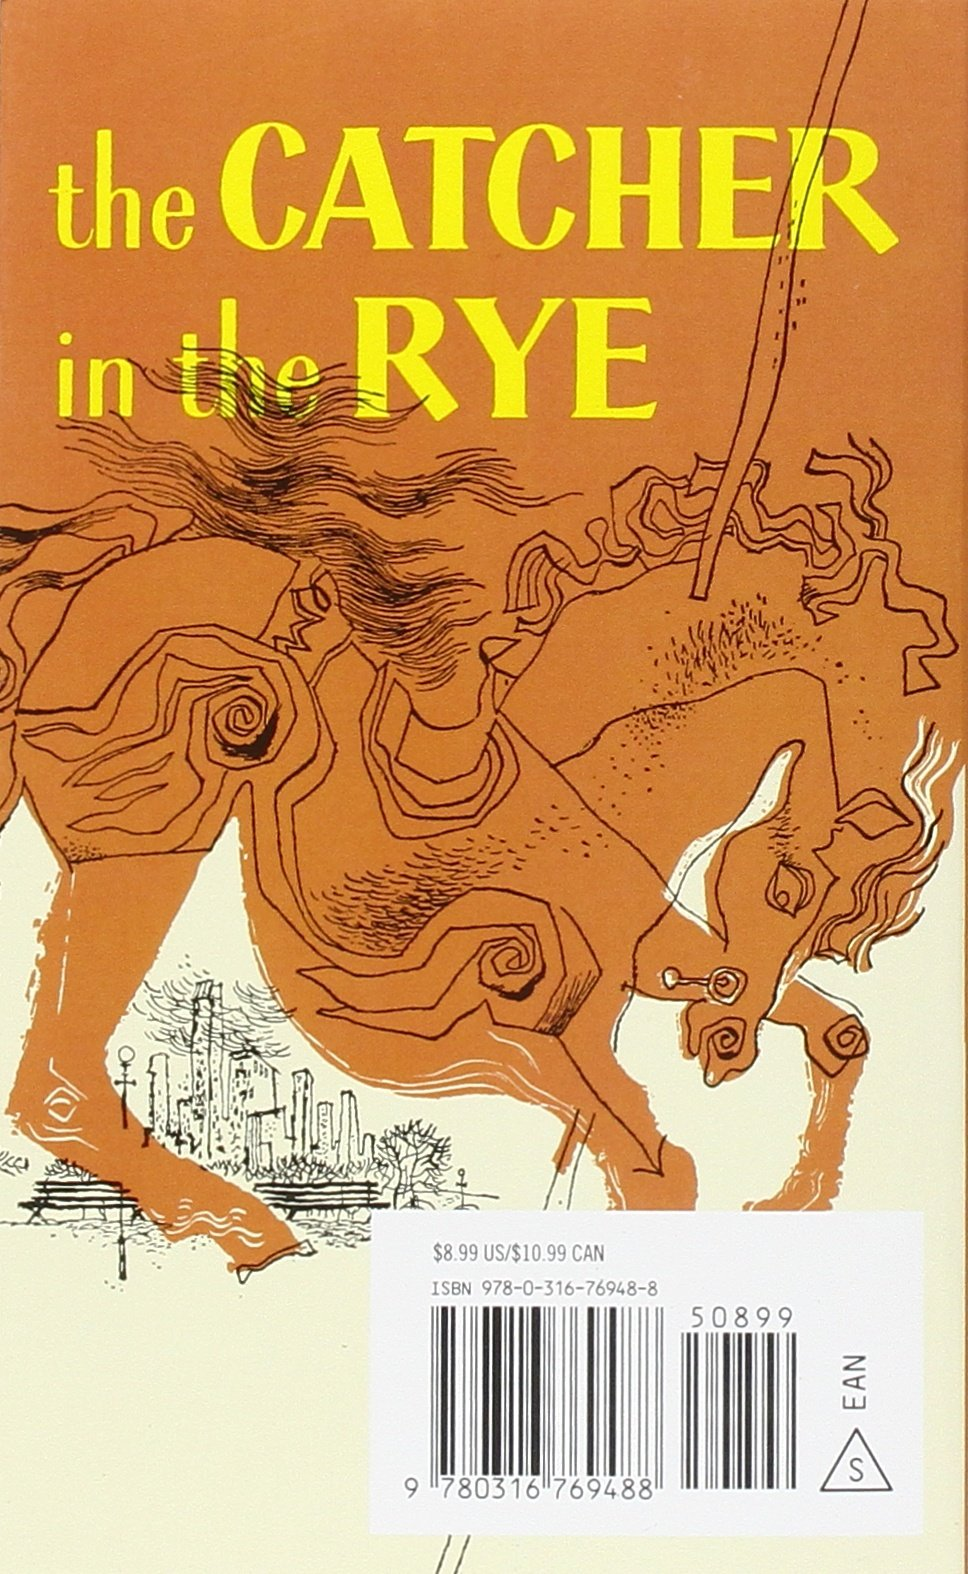 com the catcher in the rye 9780316769488 j d salinger  com the catcher in the rye 9780316769488 j d salinger books